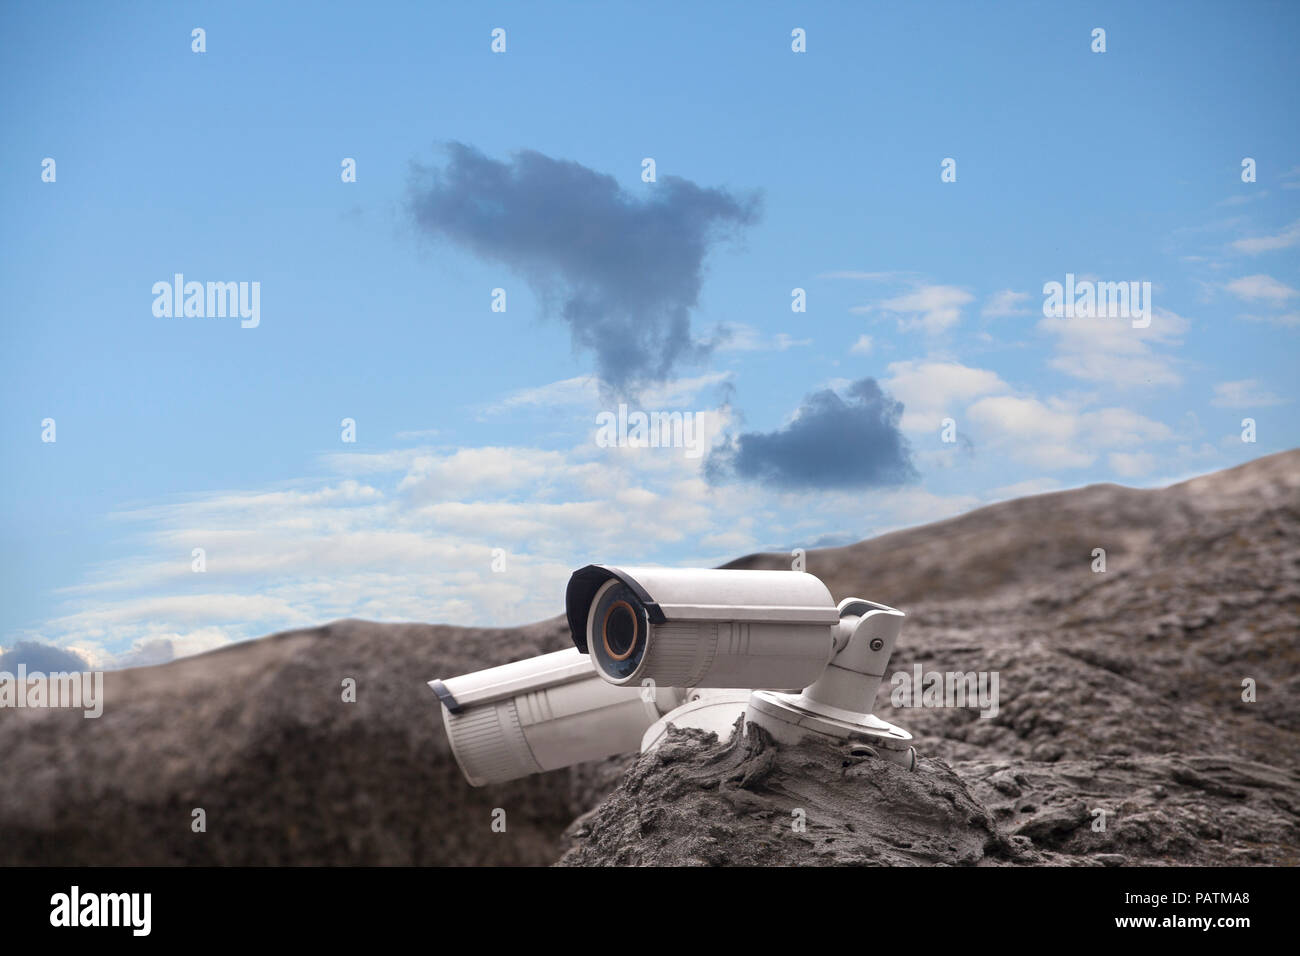 Rock Camera Surveillance : Surveillance security camera on the rock on blue sky background